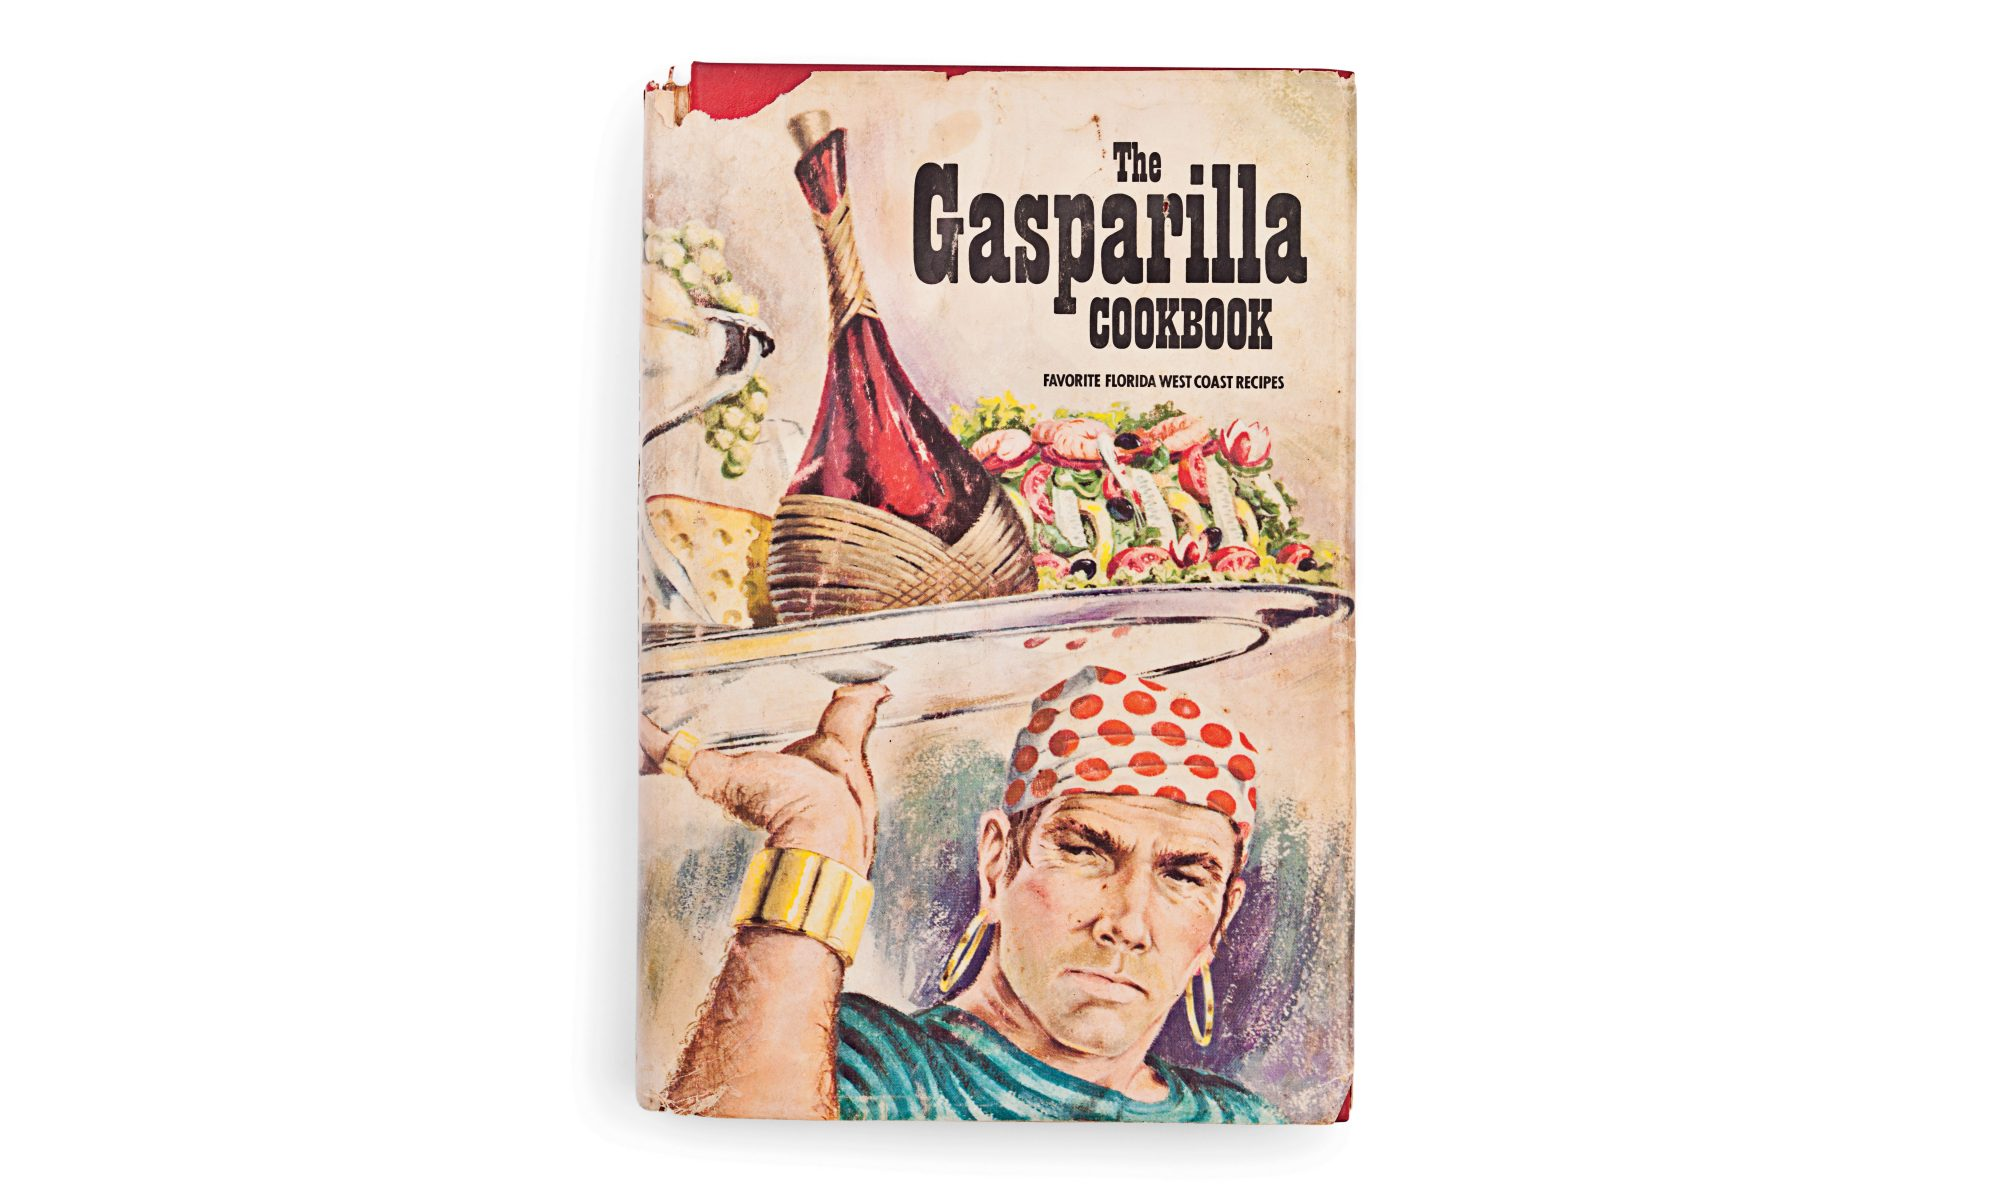 The Gasparilla Cookbook by the Junior League of Tampa